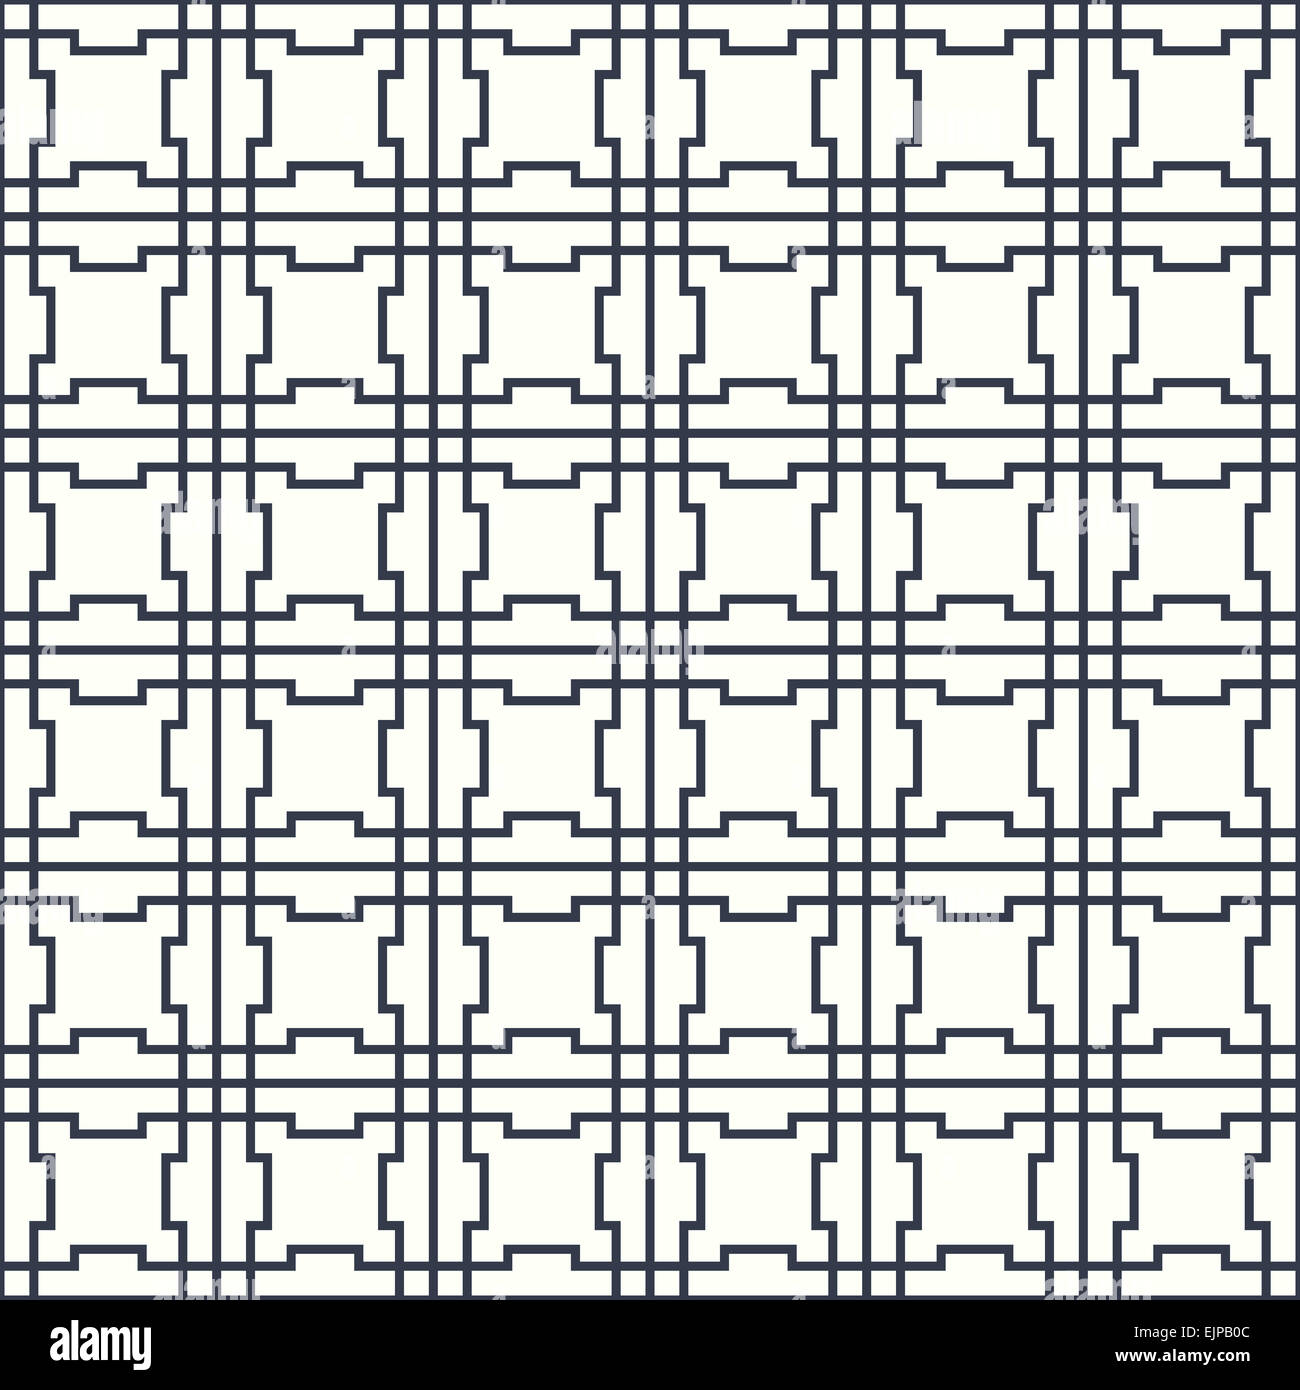 Stock Photo   Symmetrical Geometric Shapes Black And White Vector Textile  Backdrop. Can Be Used As Fabric, Tablecloth Pattern